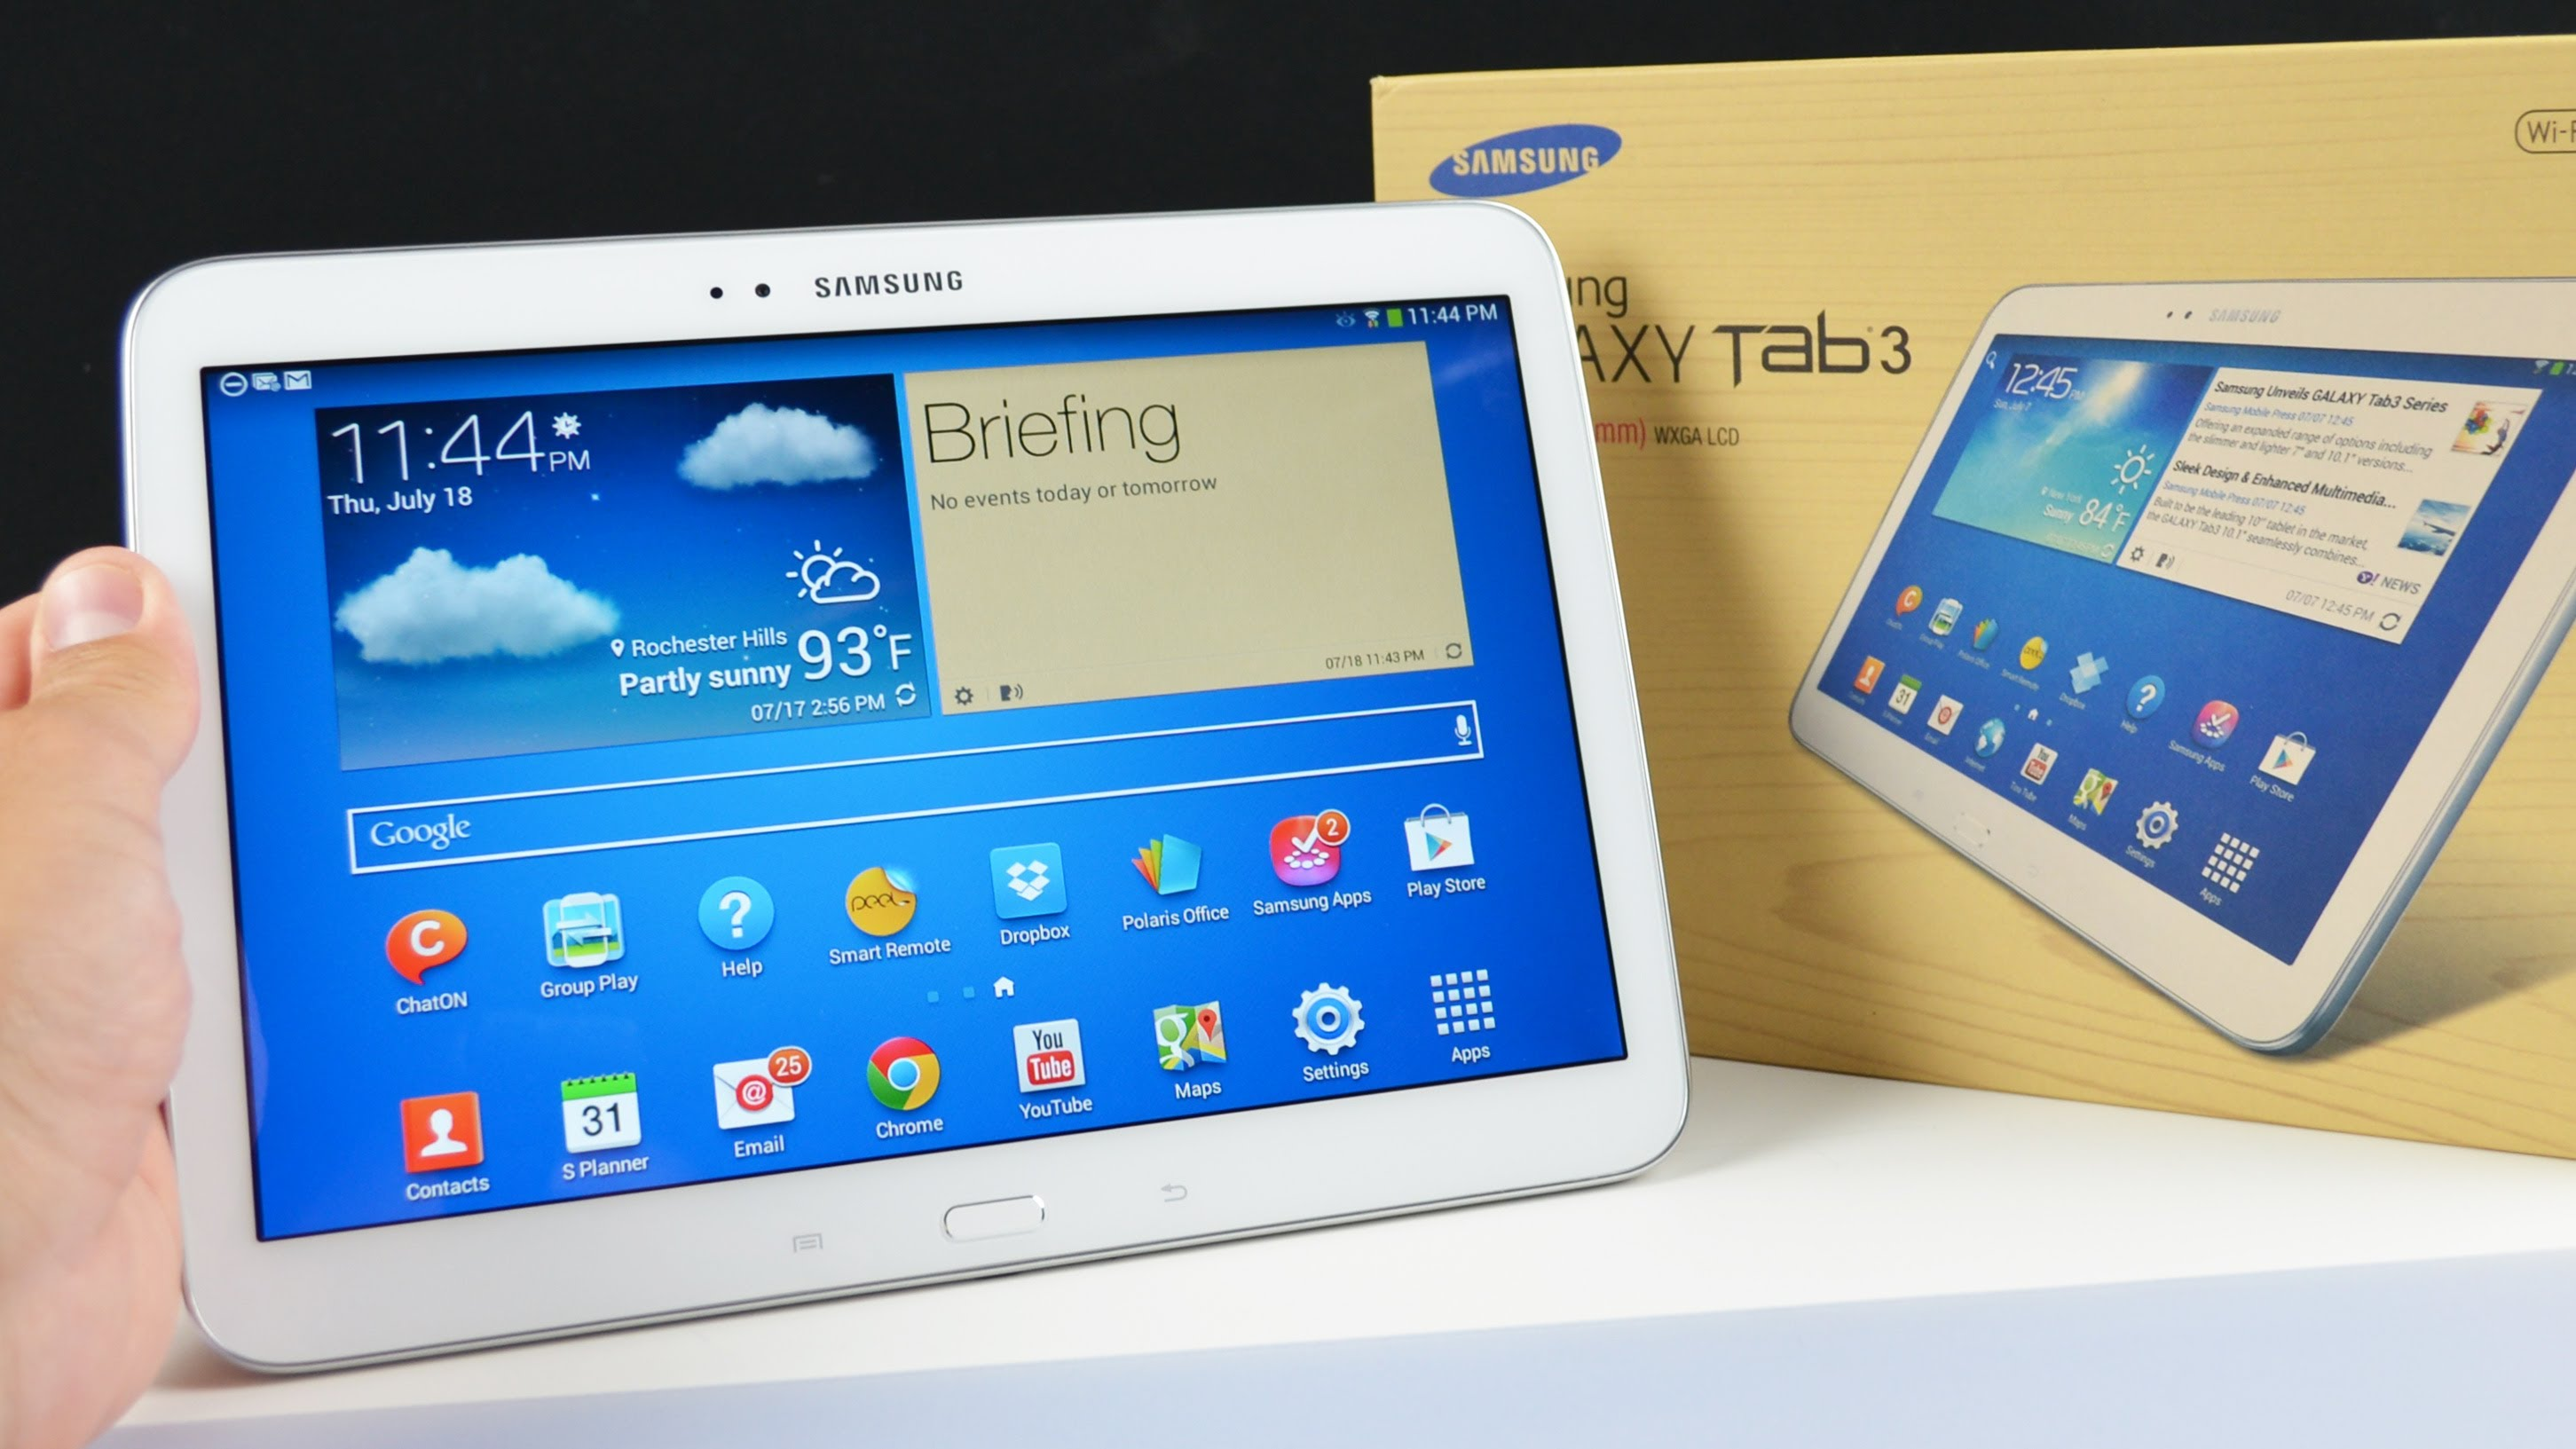 samsung galaxy tab3 - Tutte le novità al Mobile World Congress: Samsung Galaxy Tab S3 e Galaxy Book